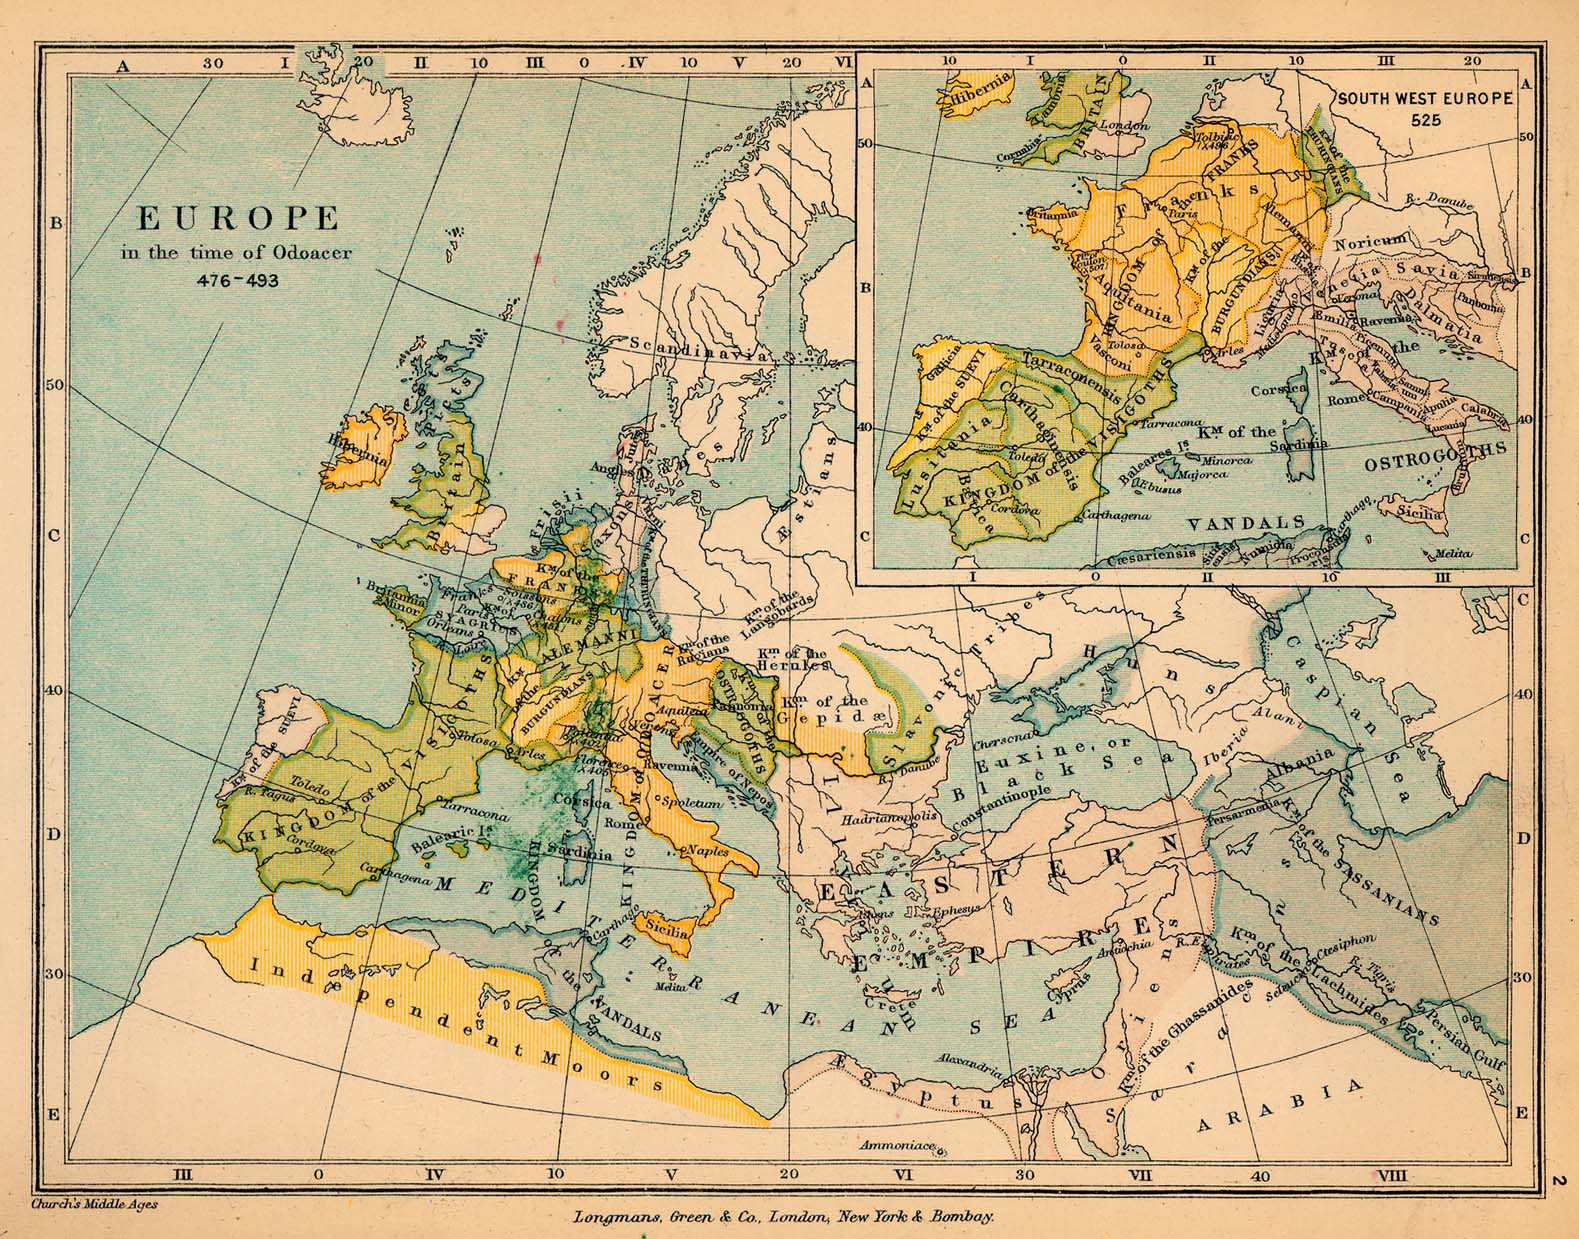 map 1 europe in the time of odoacer